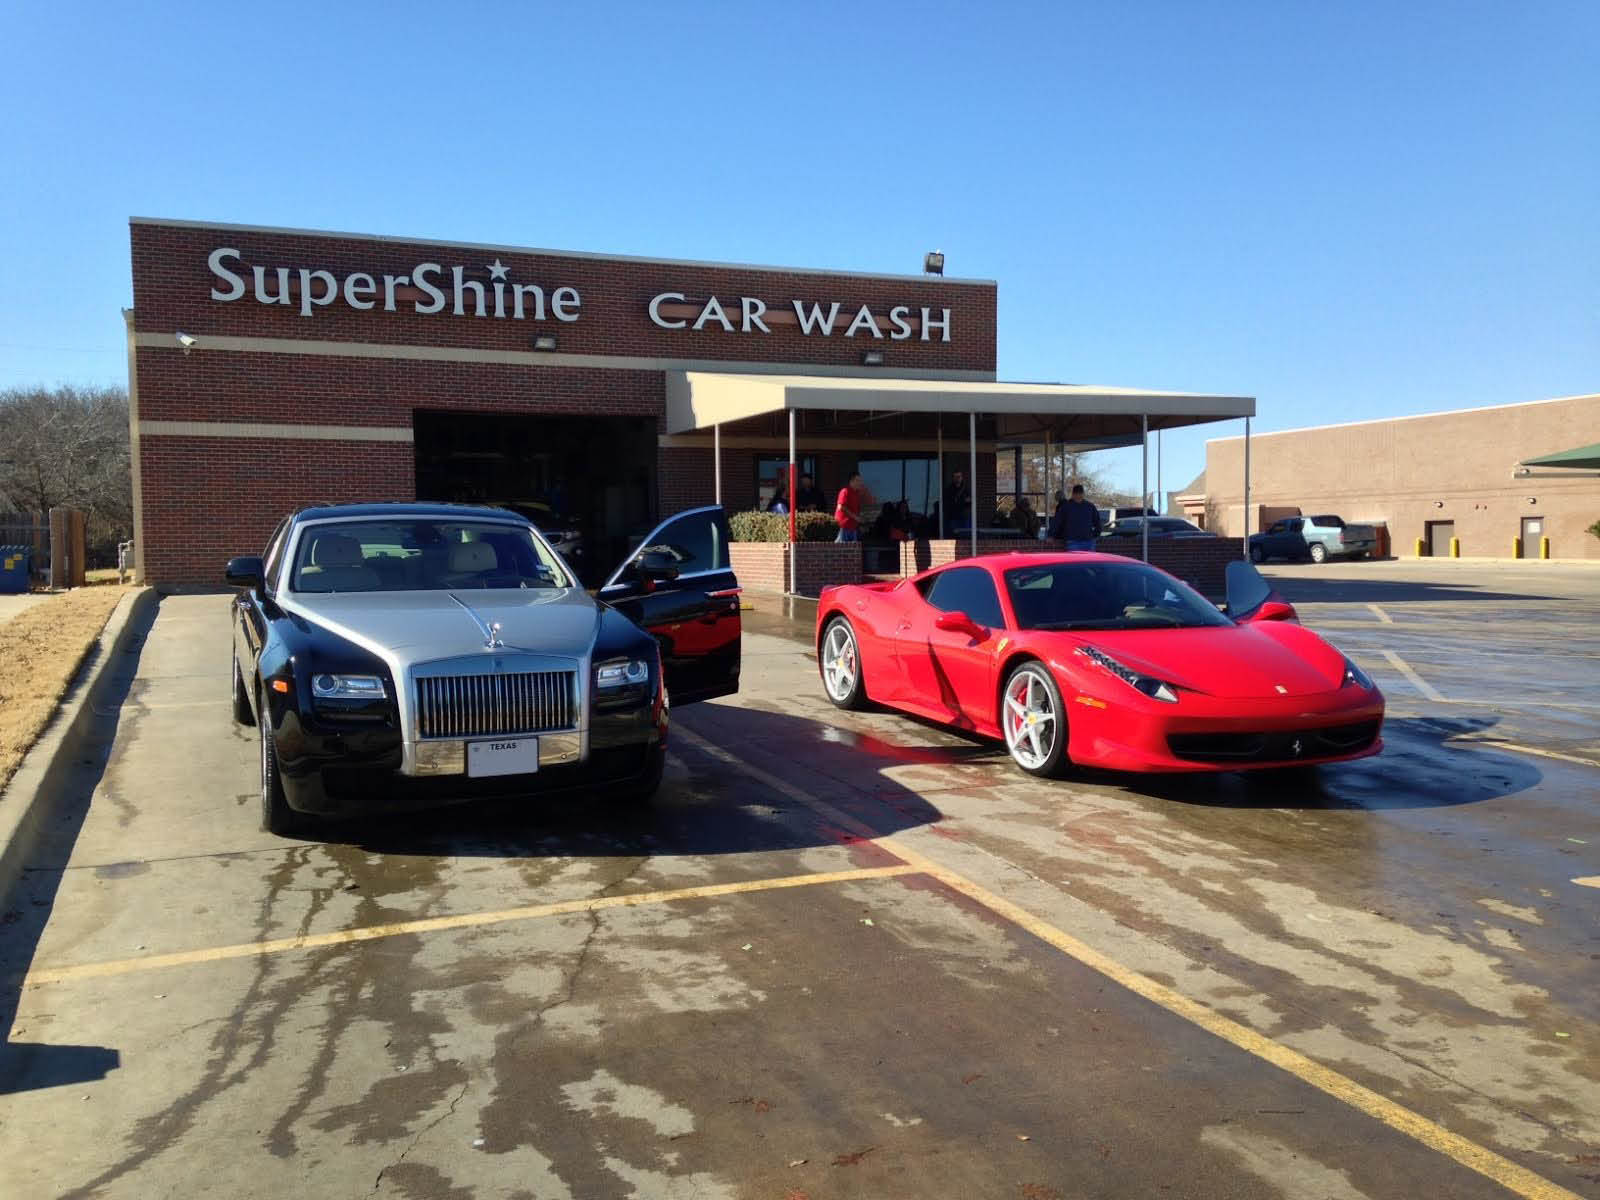 Full service call wash & detail service.